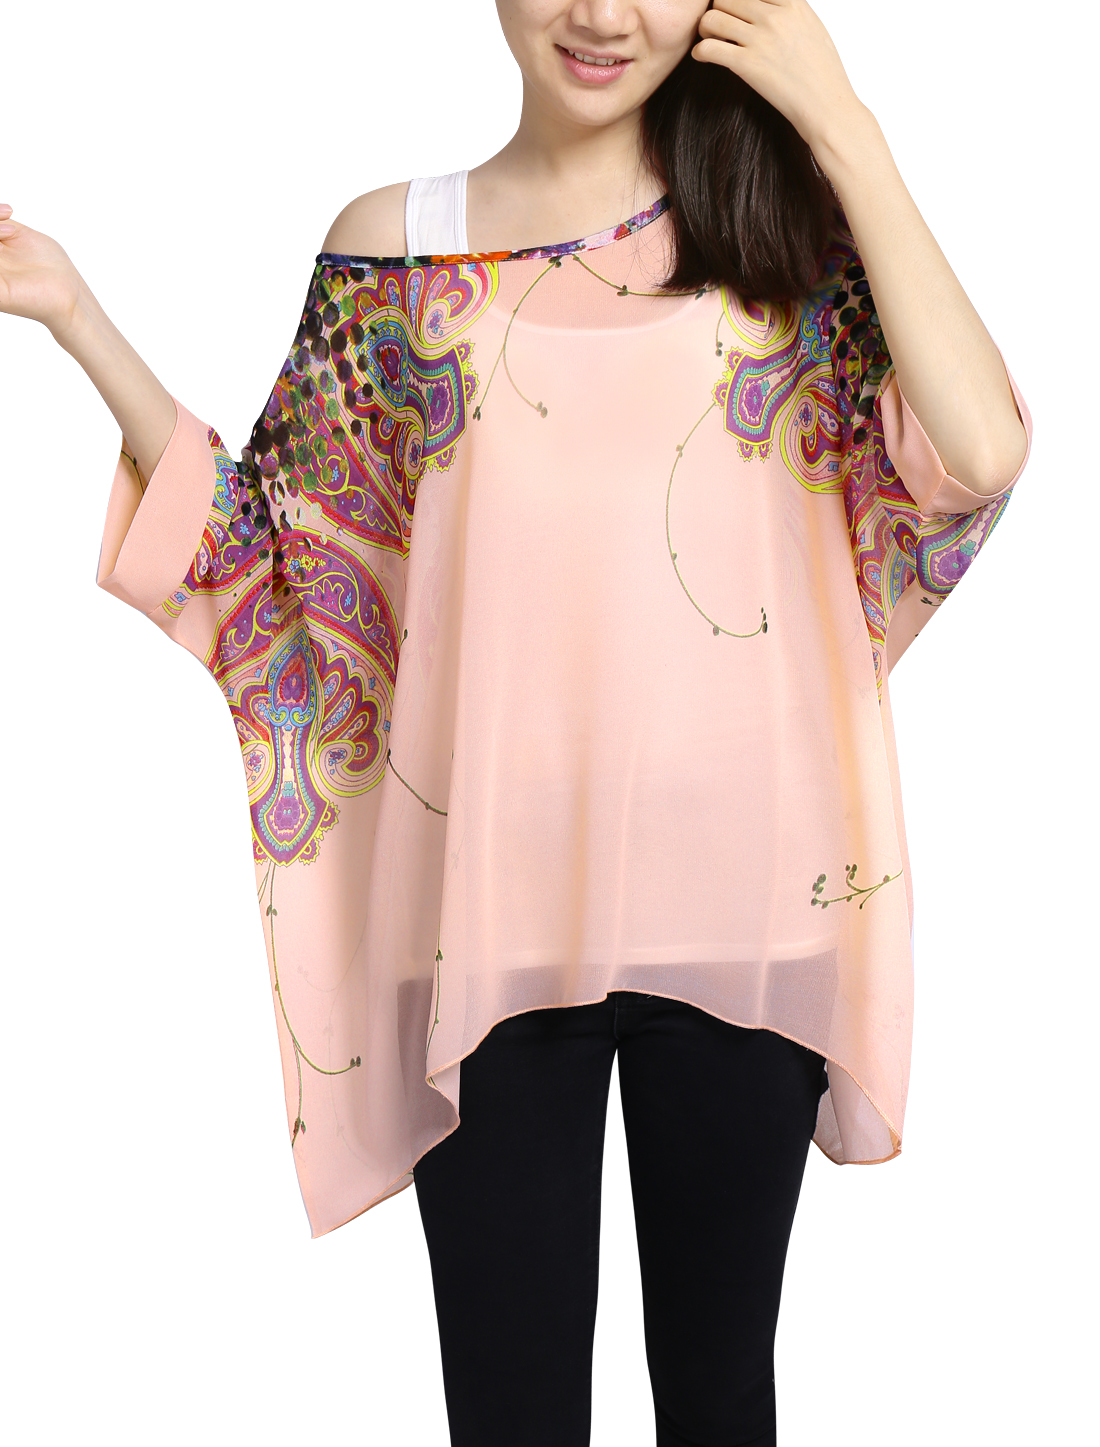 Lady Novelty Prints Batwing Sleeves Chiffon Tunic Shirts Pale Pink L